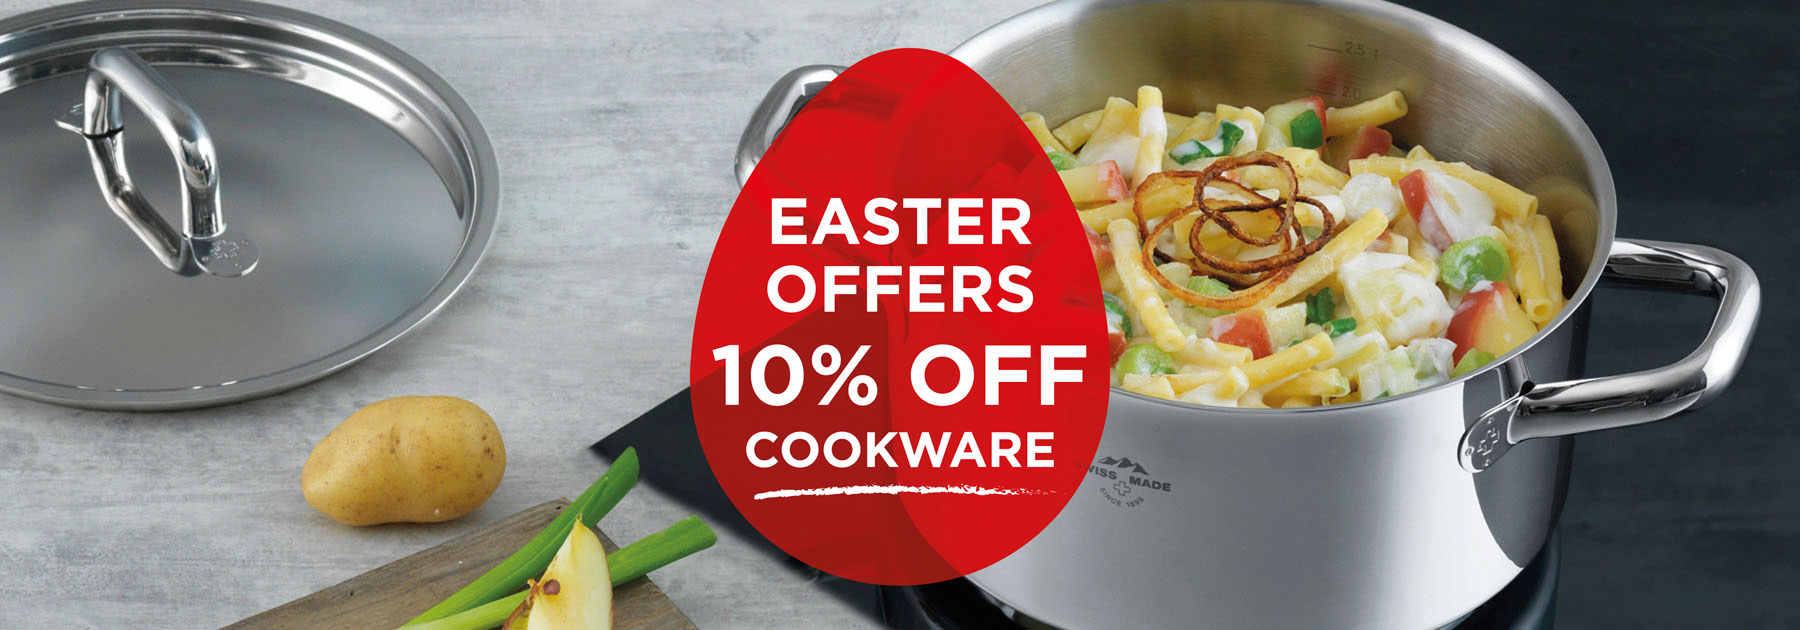 Discount, Easter, Sale, Cookware